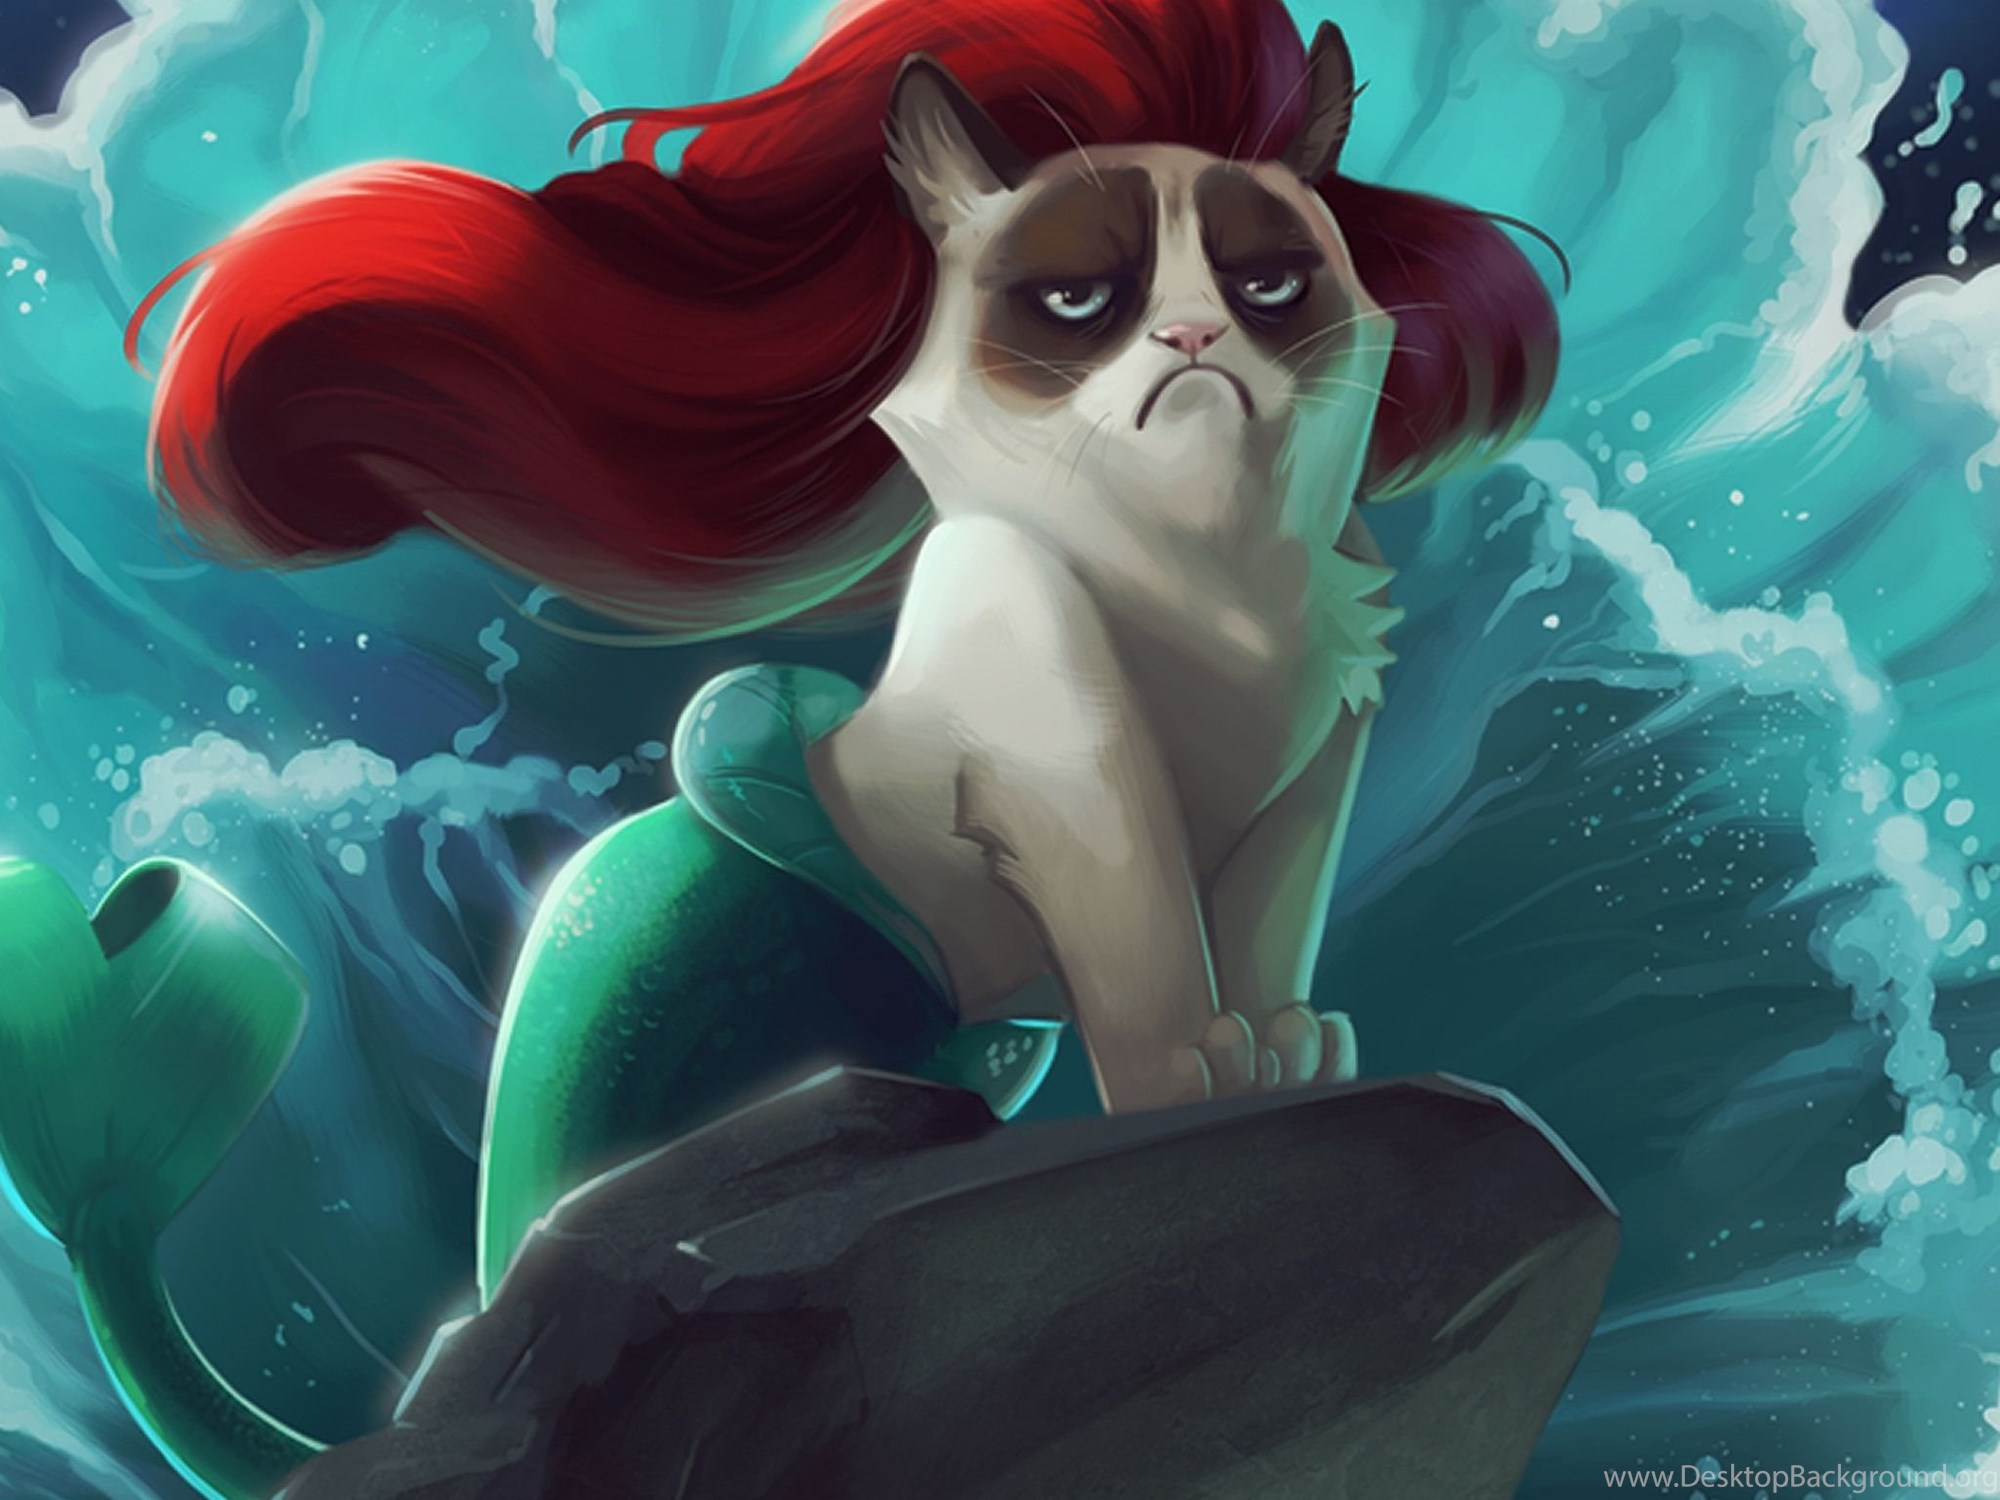 Download Wallpapers 2048x2048 Cat, Mermaid, Cartoon, Grumpy Cat New